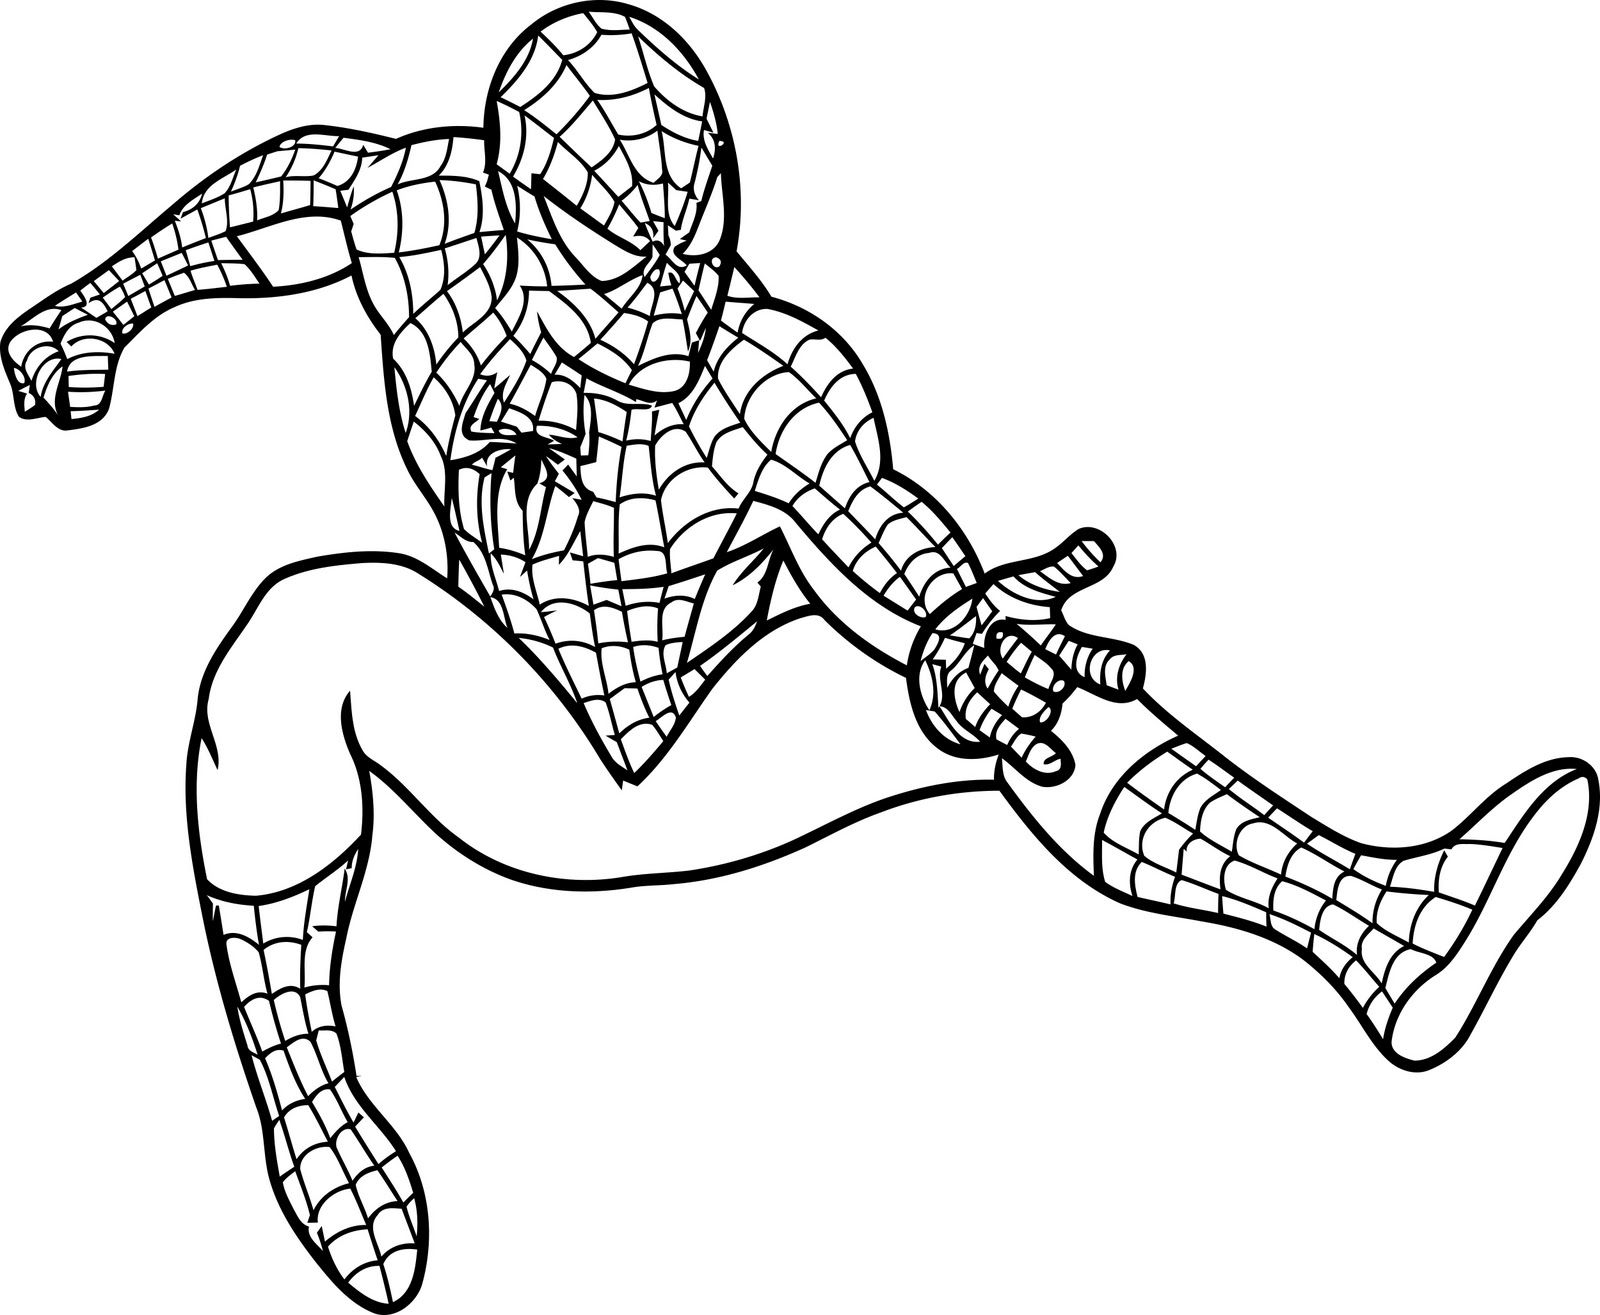 Online coloring pages for children to print - Spiderman Coloring Pages Free Online Printable Coloring Pages Sheets For Kids Get The Latest Free Spiderman Coloring Pages Images Favorite Coloring Pages